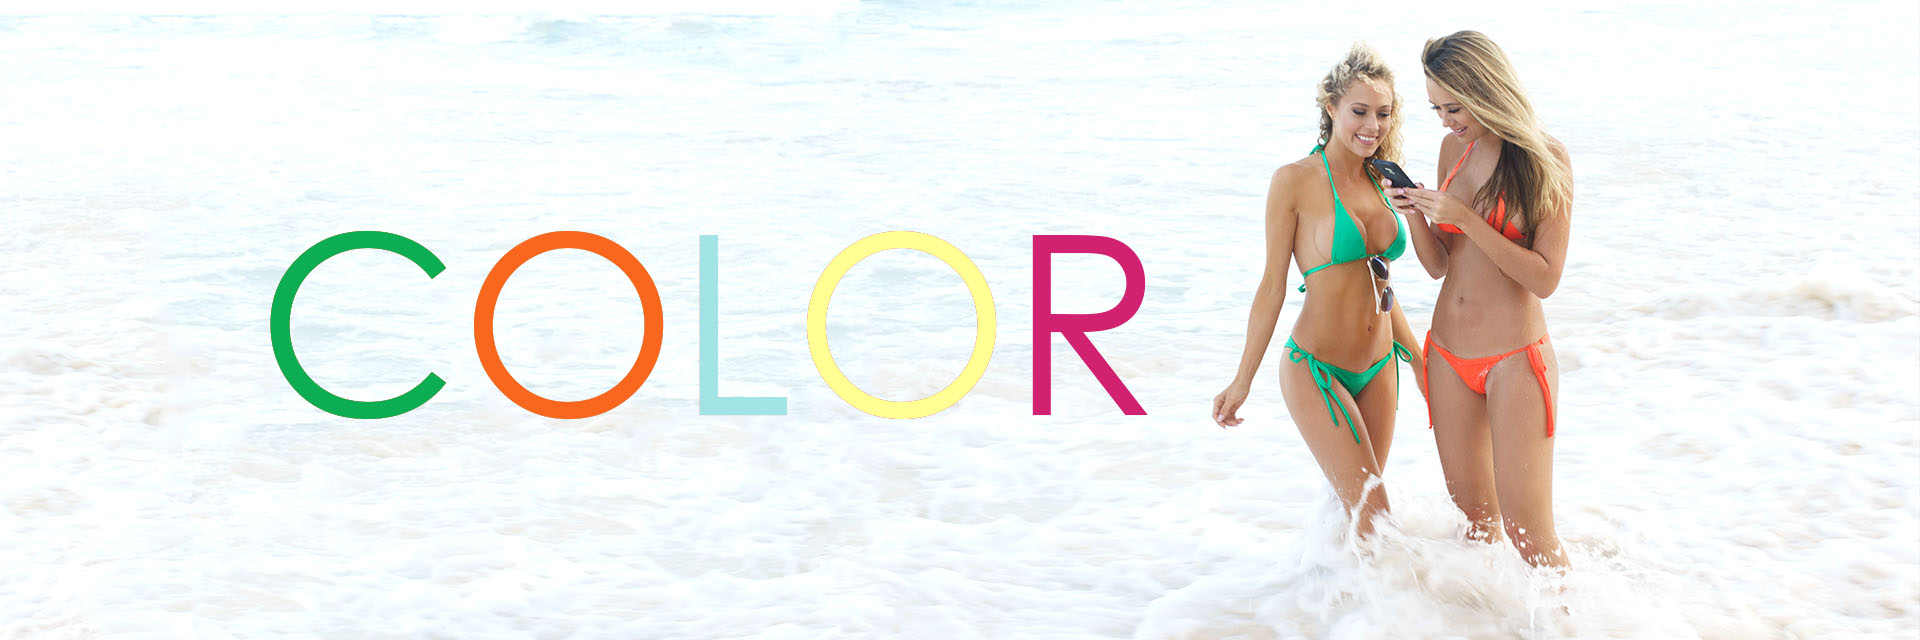 Colleen Kelly Designs / Full Color Standard Bikini & Microkini